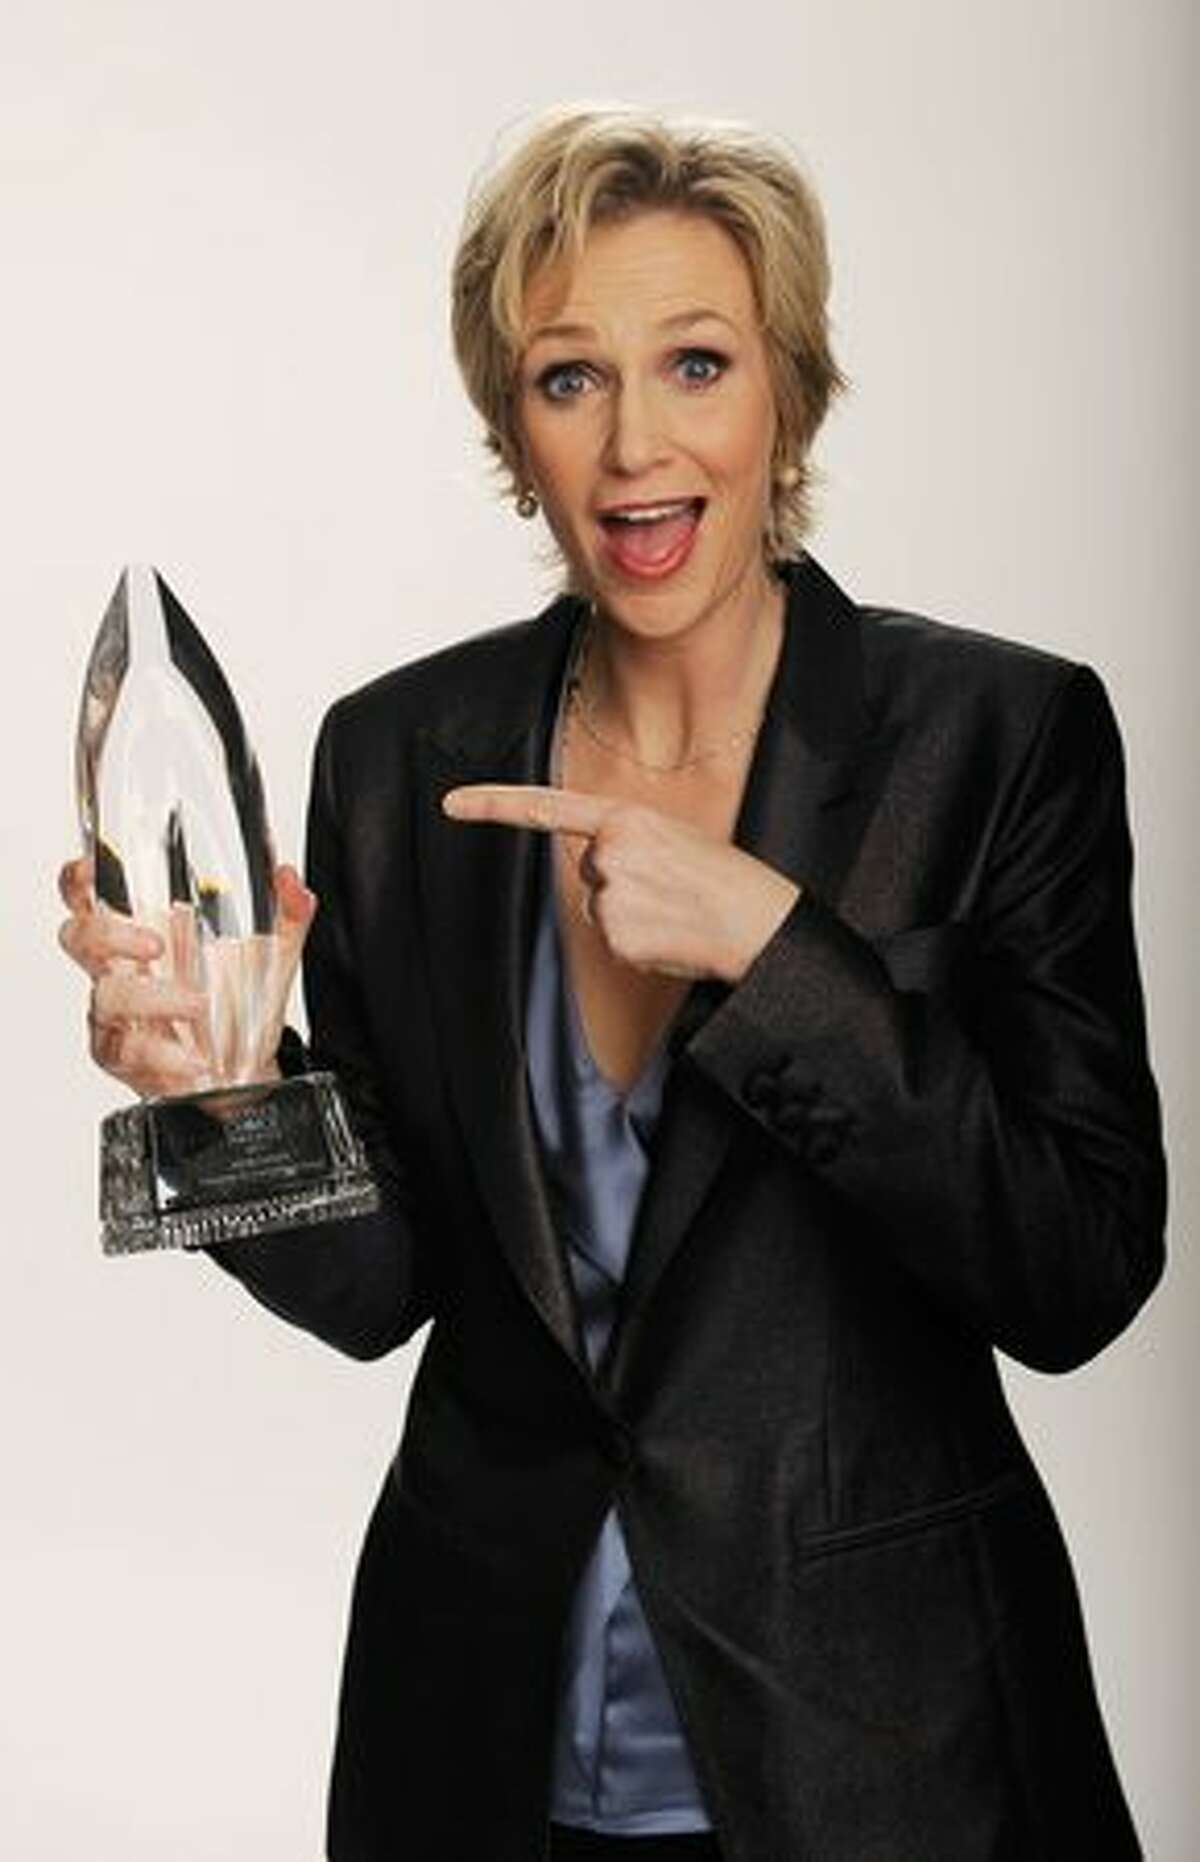 Actress Jane Lynch, winner of the Favorite TV Comedy award for